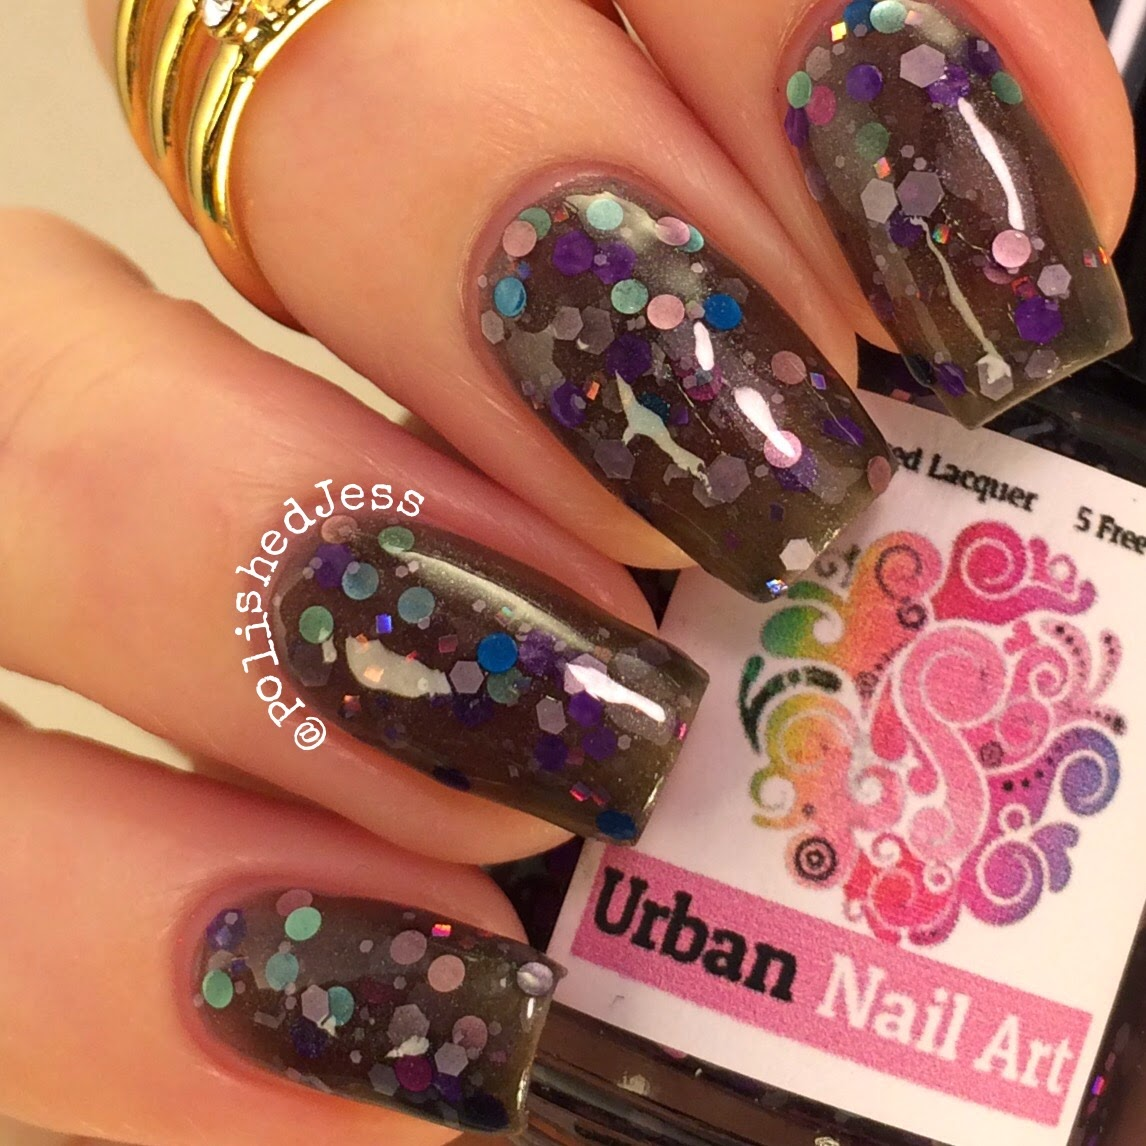 Polished Jess : Urban Nail Art - Out of the Blue Collection